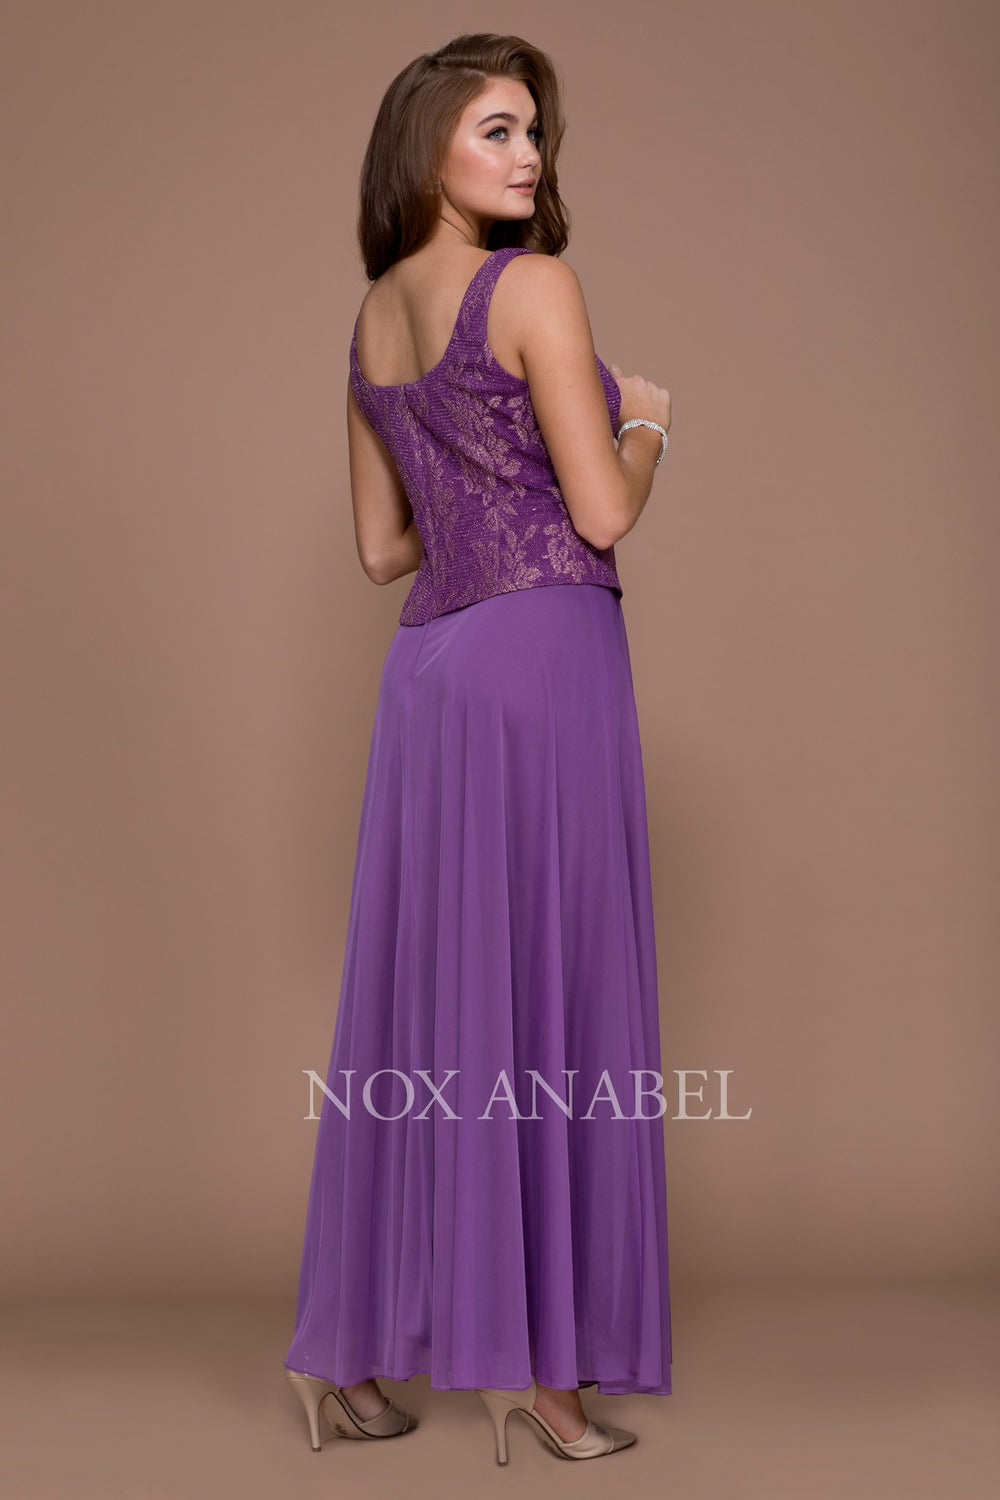 LONG, MOTHER OF THE BRIDE, TWO PIECE, 5076 BY NARIANNA